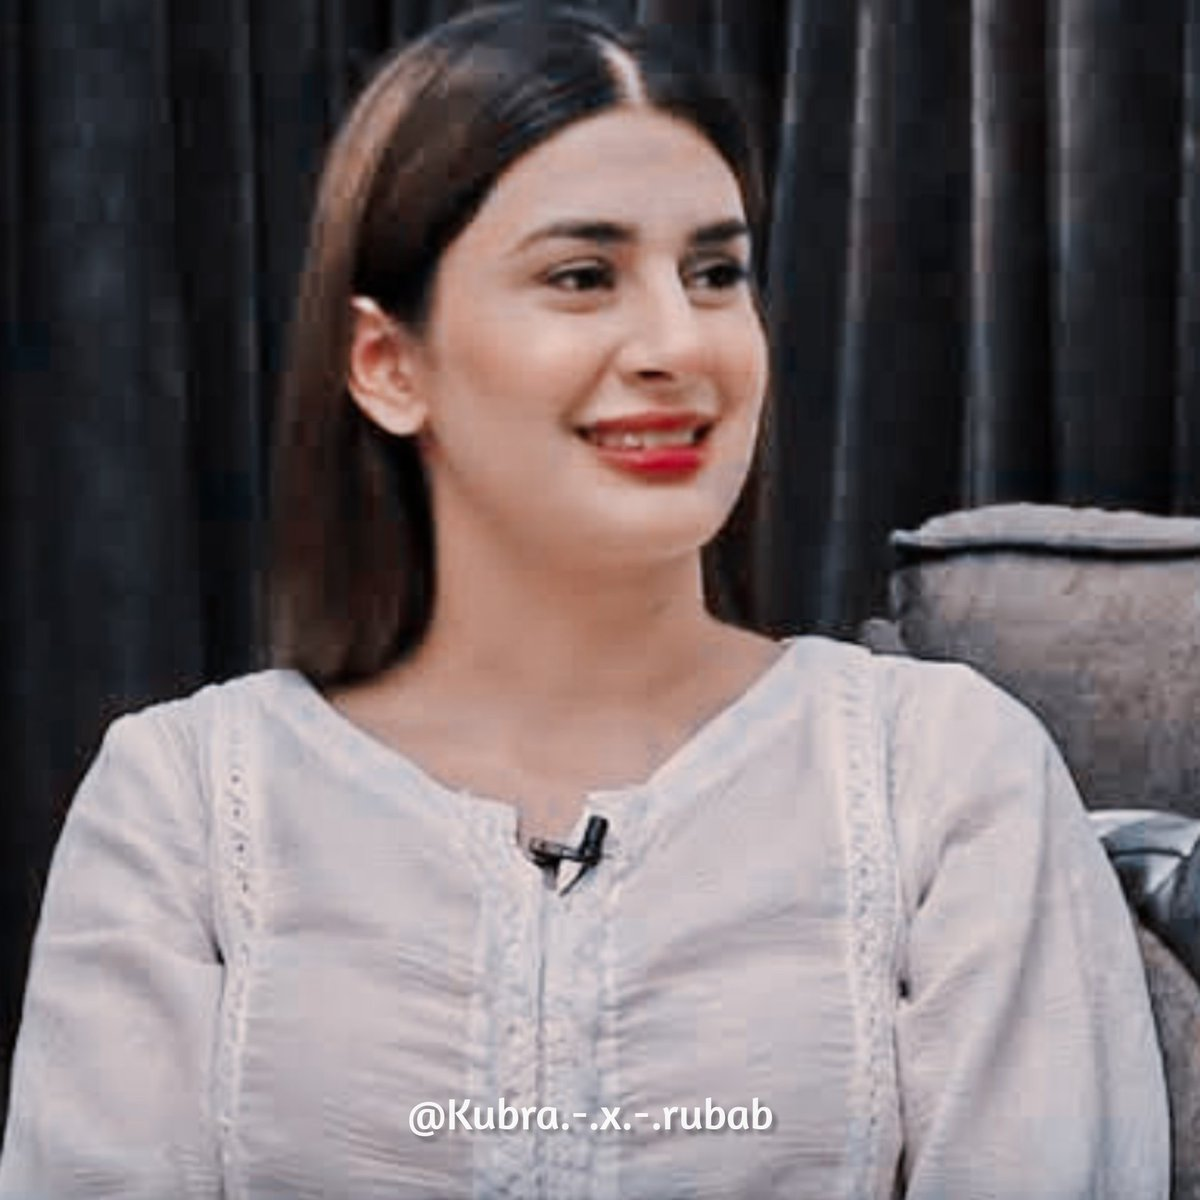 Life without love is like a tree without blossoms or fruit. The best thing to hold onto in life is each other.'Tis better to have loved and lost than never to have loved at all. Love you so much 😍☺ @KubraMKhan  #kubrakhan #smile #everything #foryou #loveyou #grateful #FABULOUS